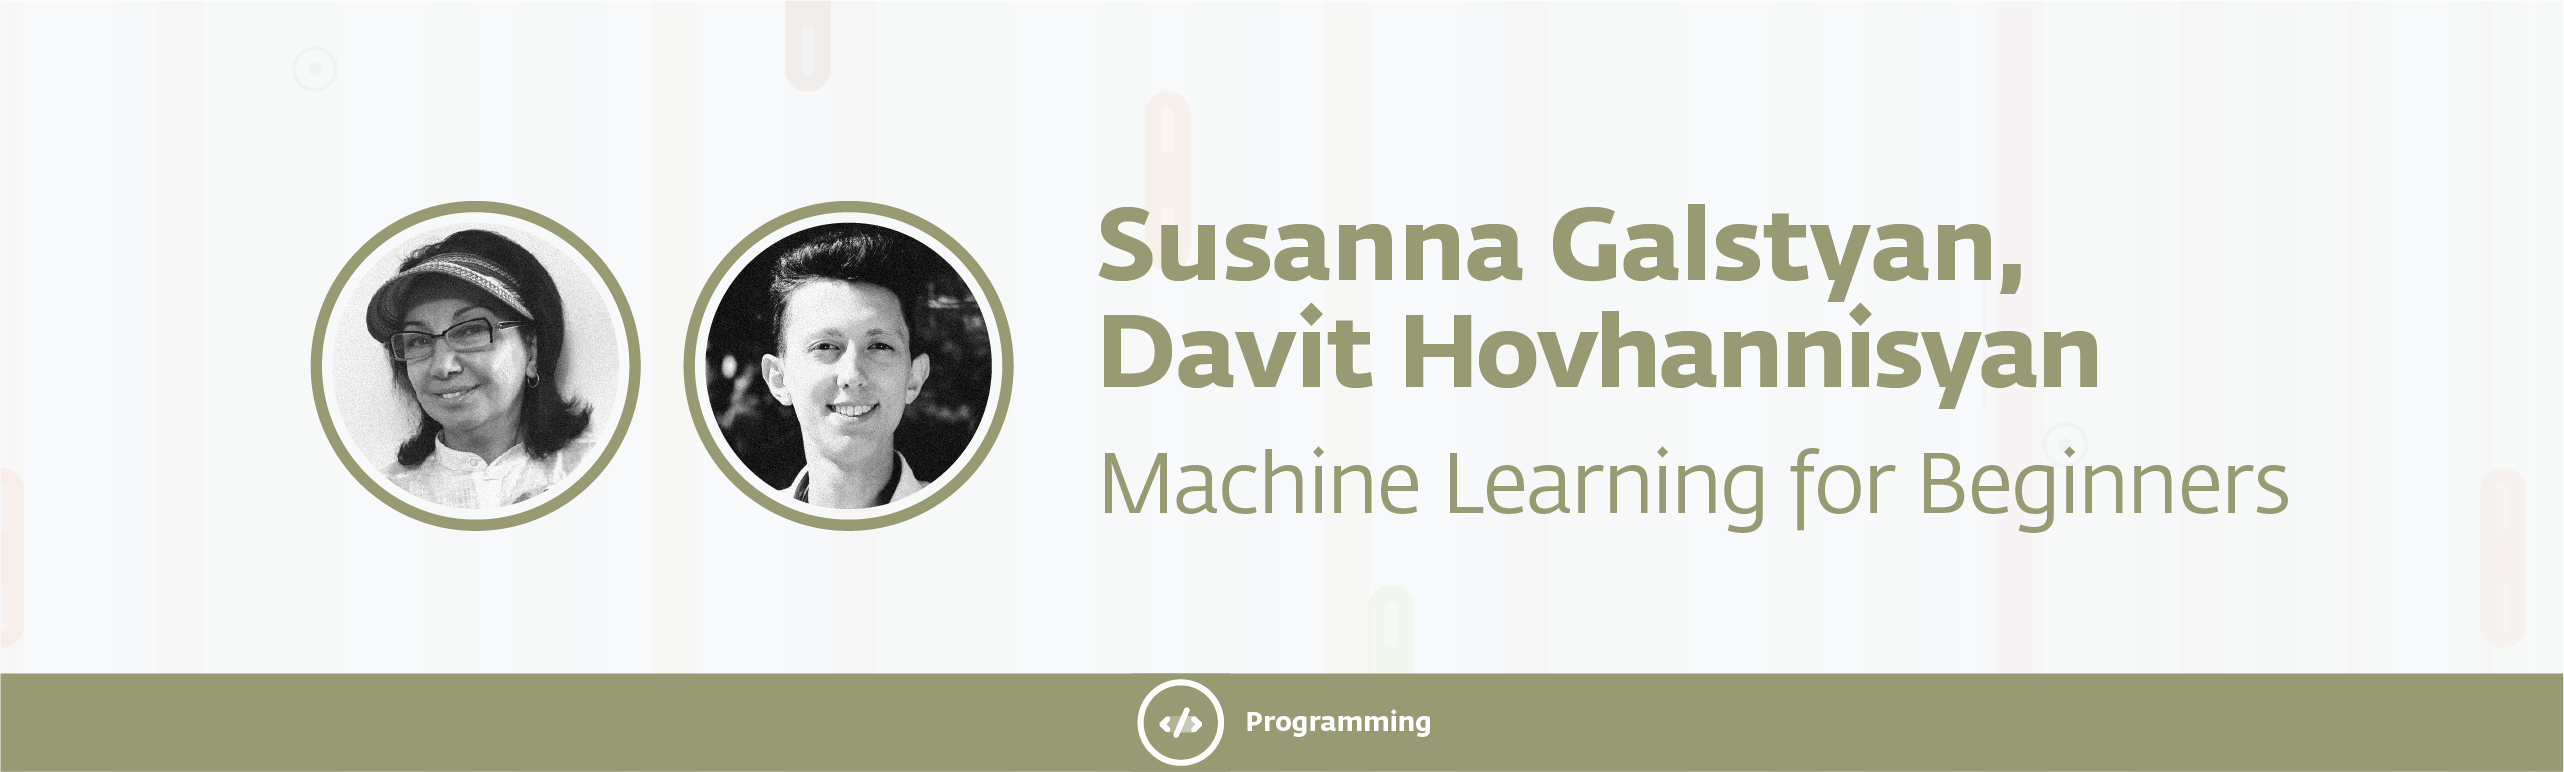 50 - Machine Learning for Beginners